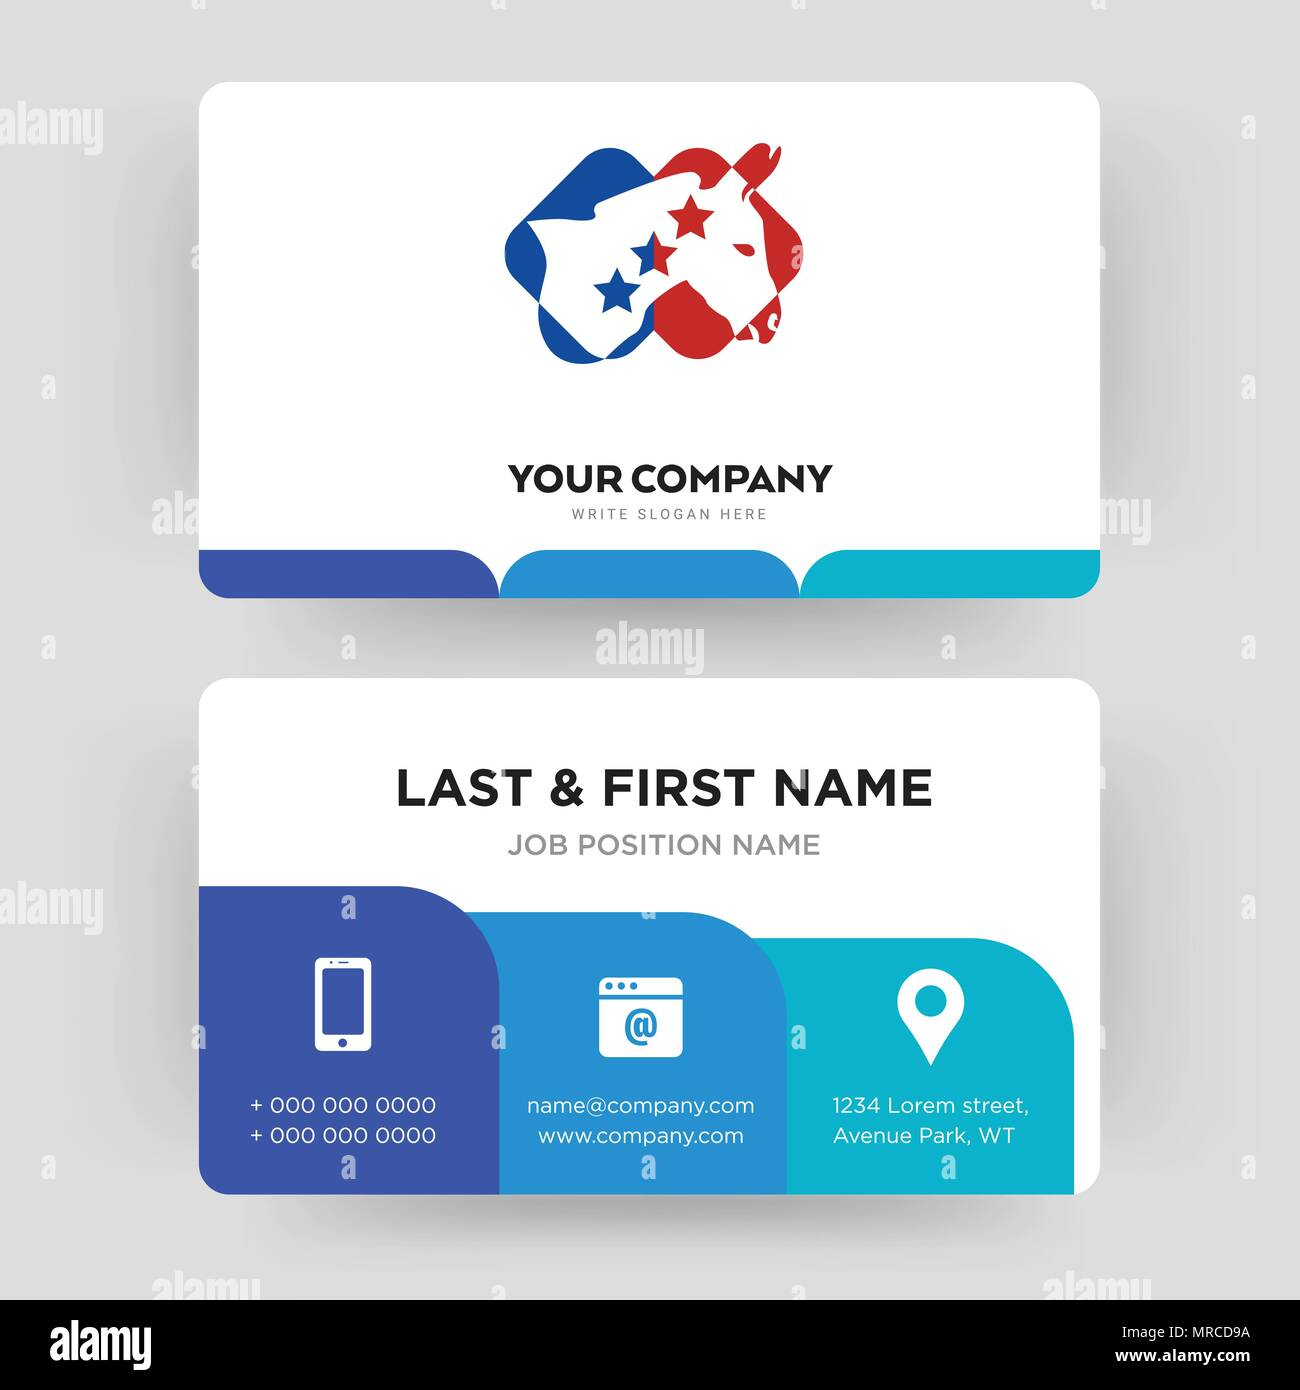 democrat, business card design template, Visiting for your company, Modern Creative and Clean identity Card Vector - Stock Image